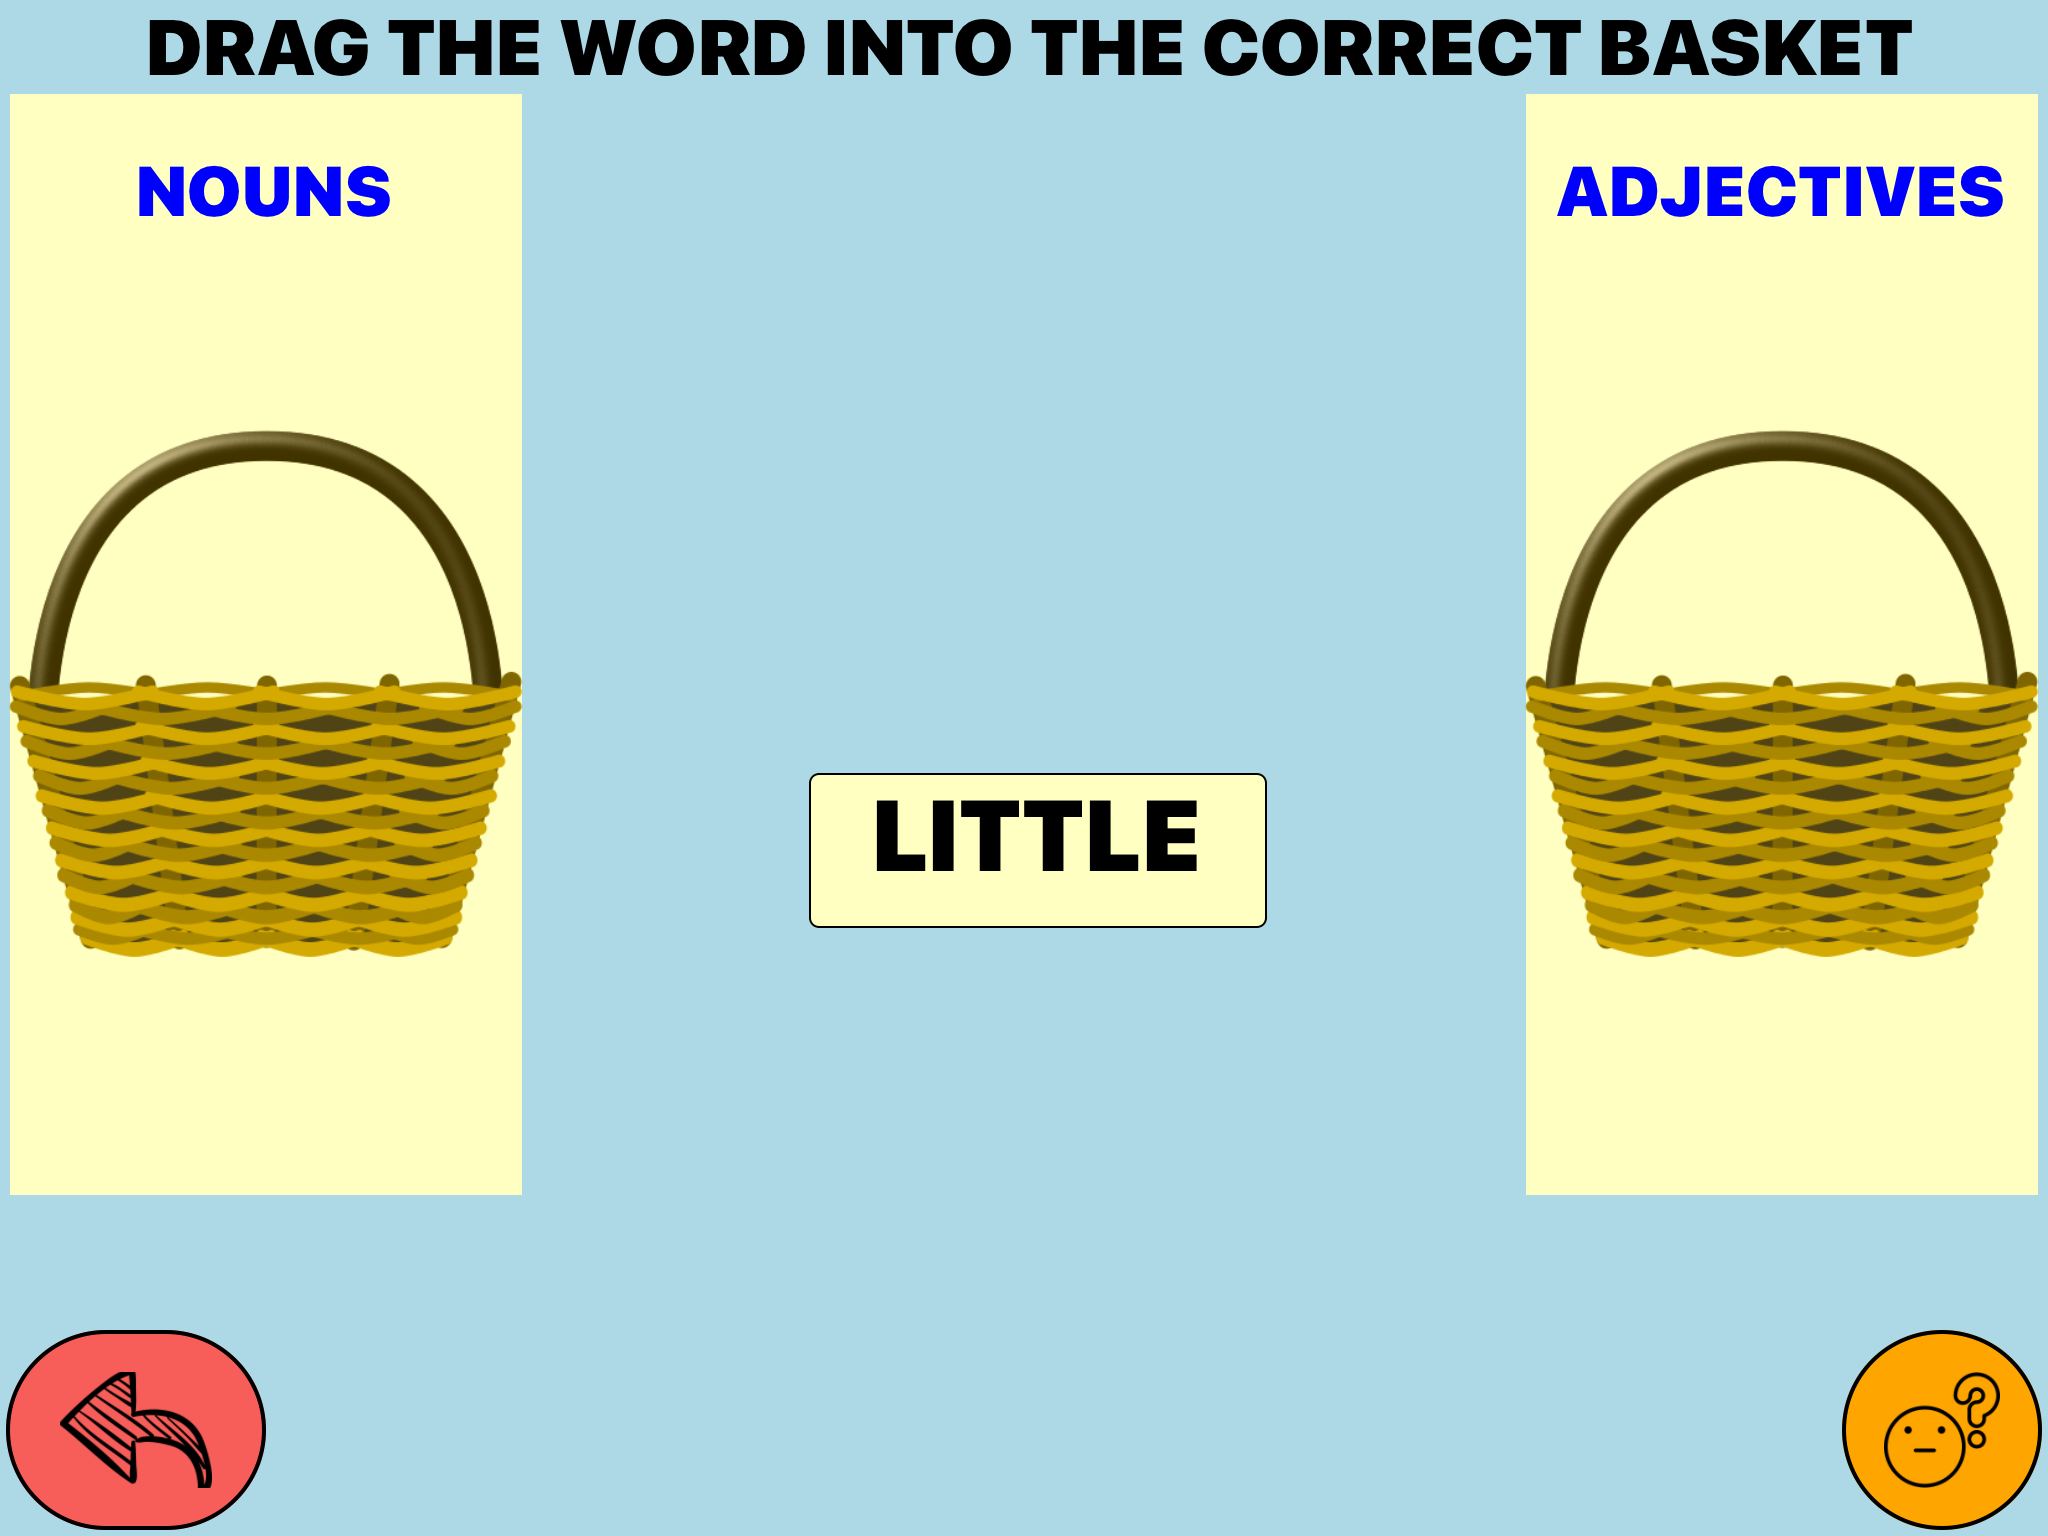 """Drag the word into the correct basket""; ""nouns""  basket on left, ""adjectives"" basket on right with the word ""Little"" in the center of the screen."